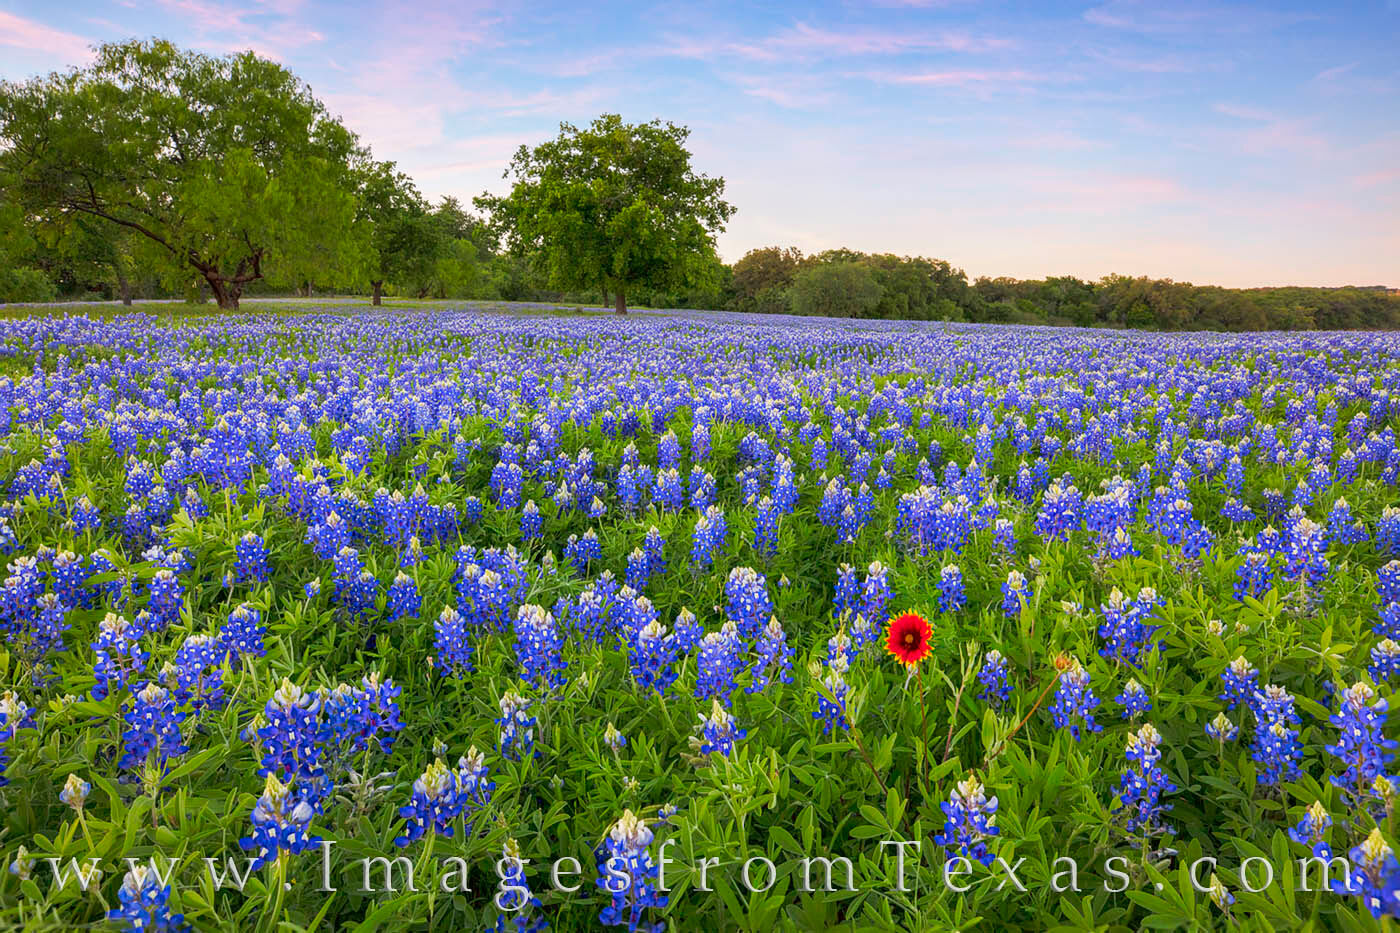 bluebonnets; bluebonnet photos; texas wildflowers; indian blankets; texas wildflower prints; texas hill country; marble falls; texas spring; spring landscape; texas landscapes